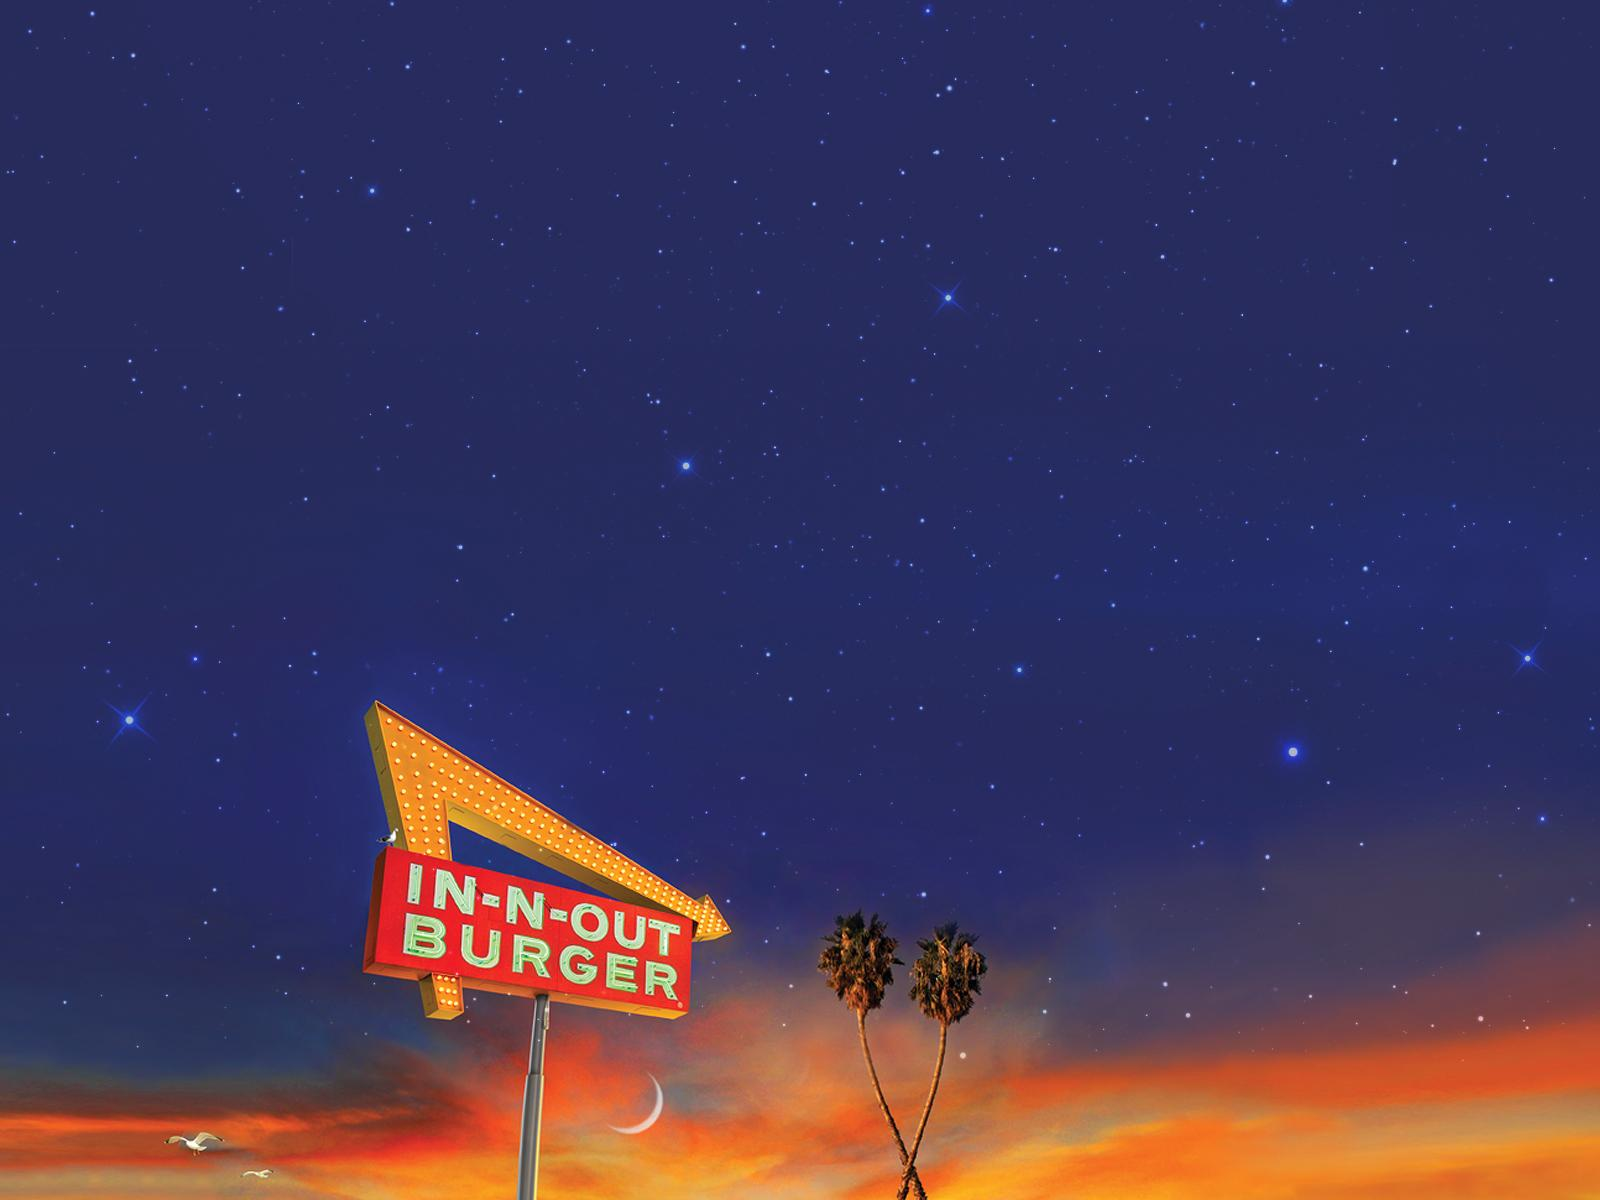 Download Wallpaper - Crossed Palms - 1600x1200 - In-N-Out Burger